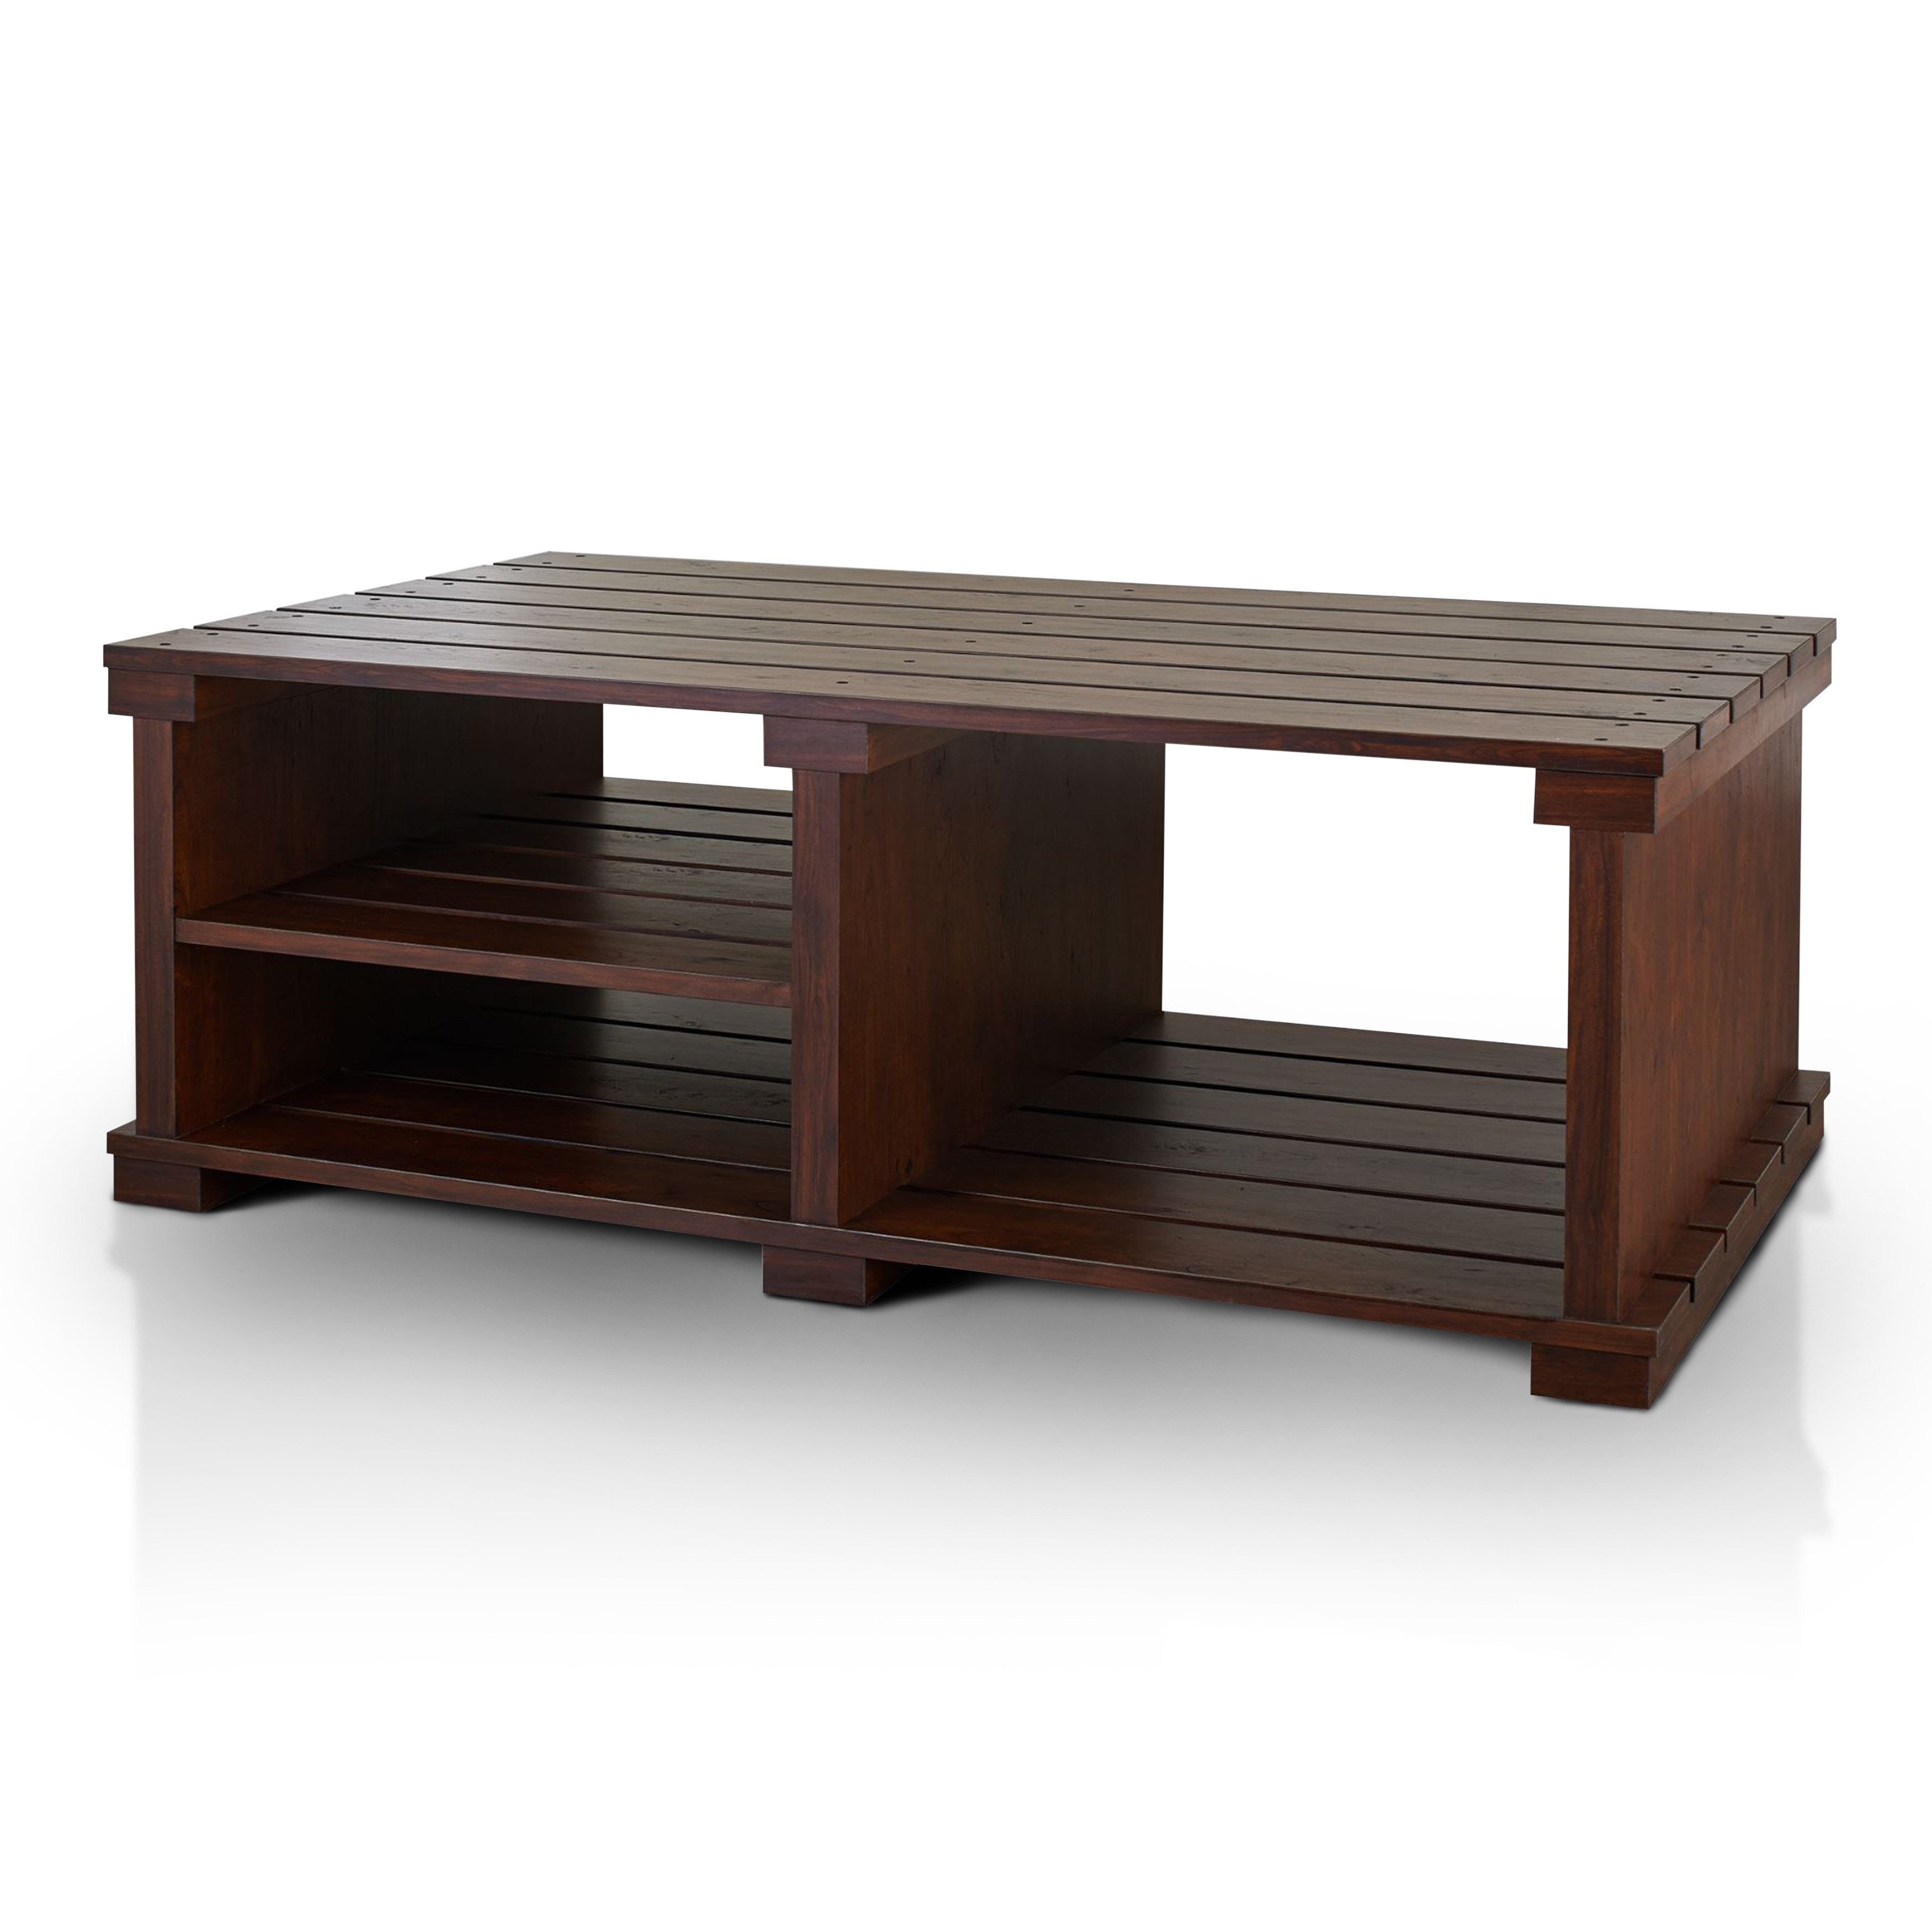 Shop Furniture Of America Brenetta 3 Shelf Vintage Walnut Coffee Table    Free Shipping Today   Overstock.com   9352157